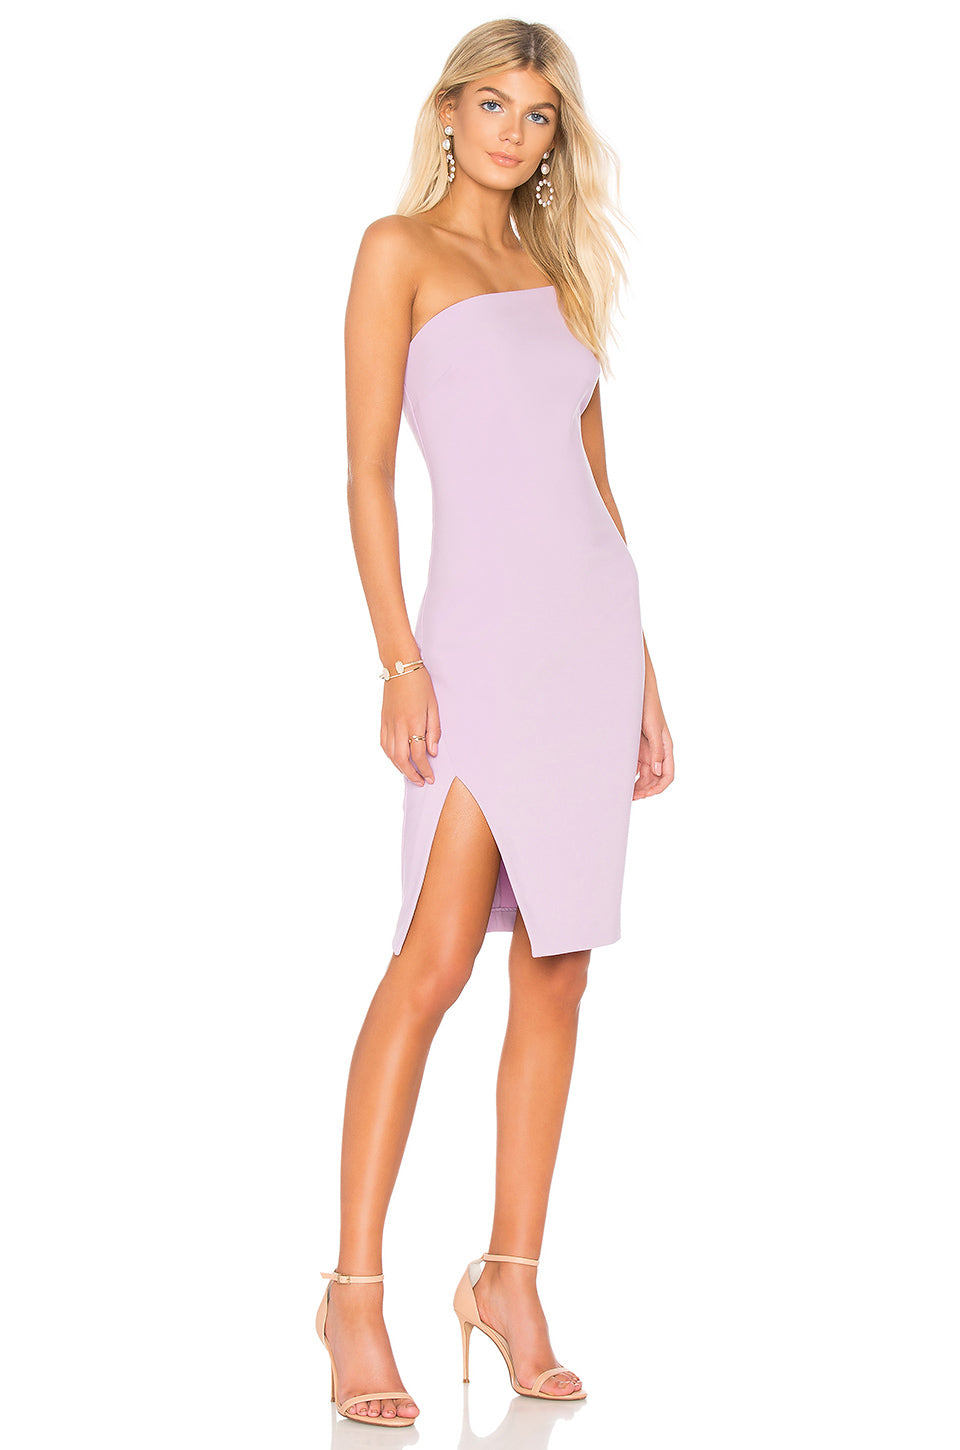 One Shoulder Lilac Fitted Dress. Robe à une épaule